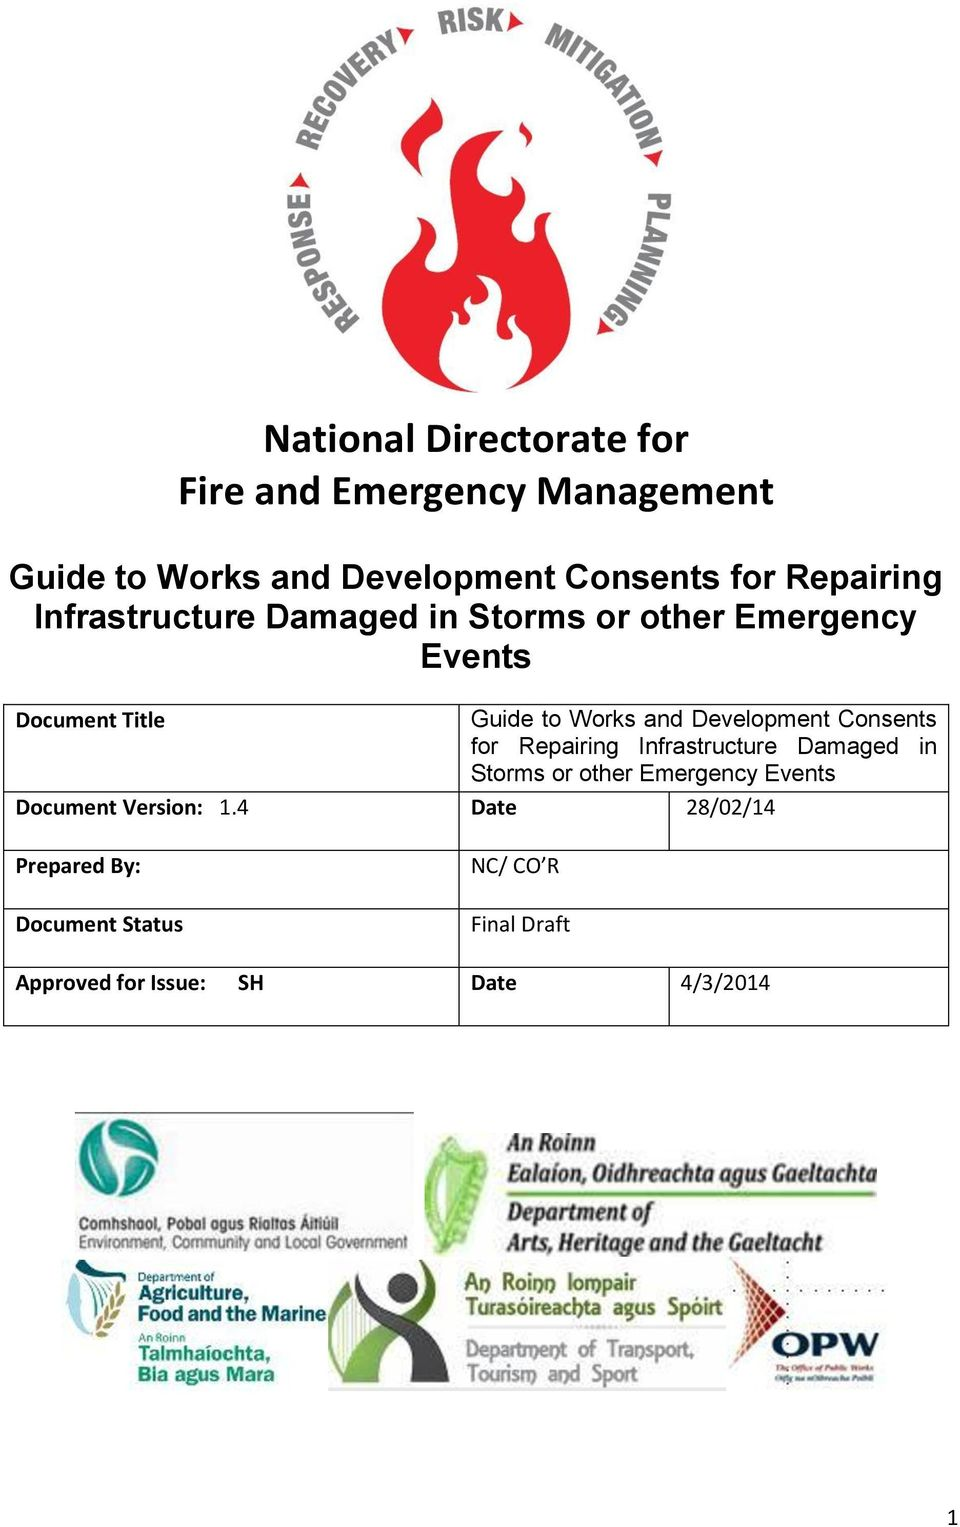 Development Consents for Repairing Infrastructure Damaged in Storms or other Emergency Events Document